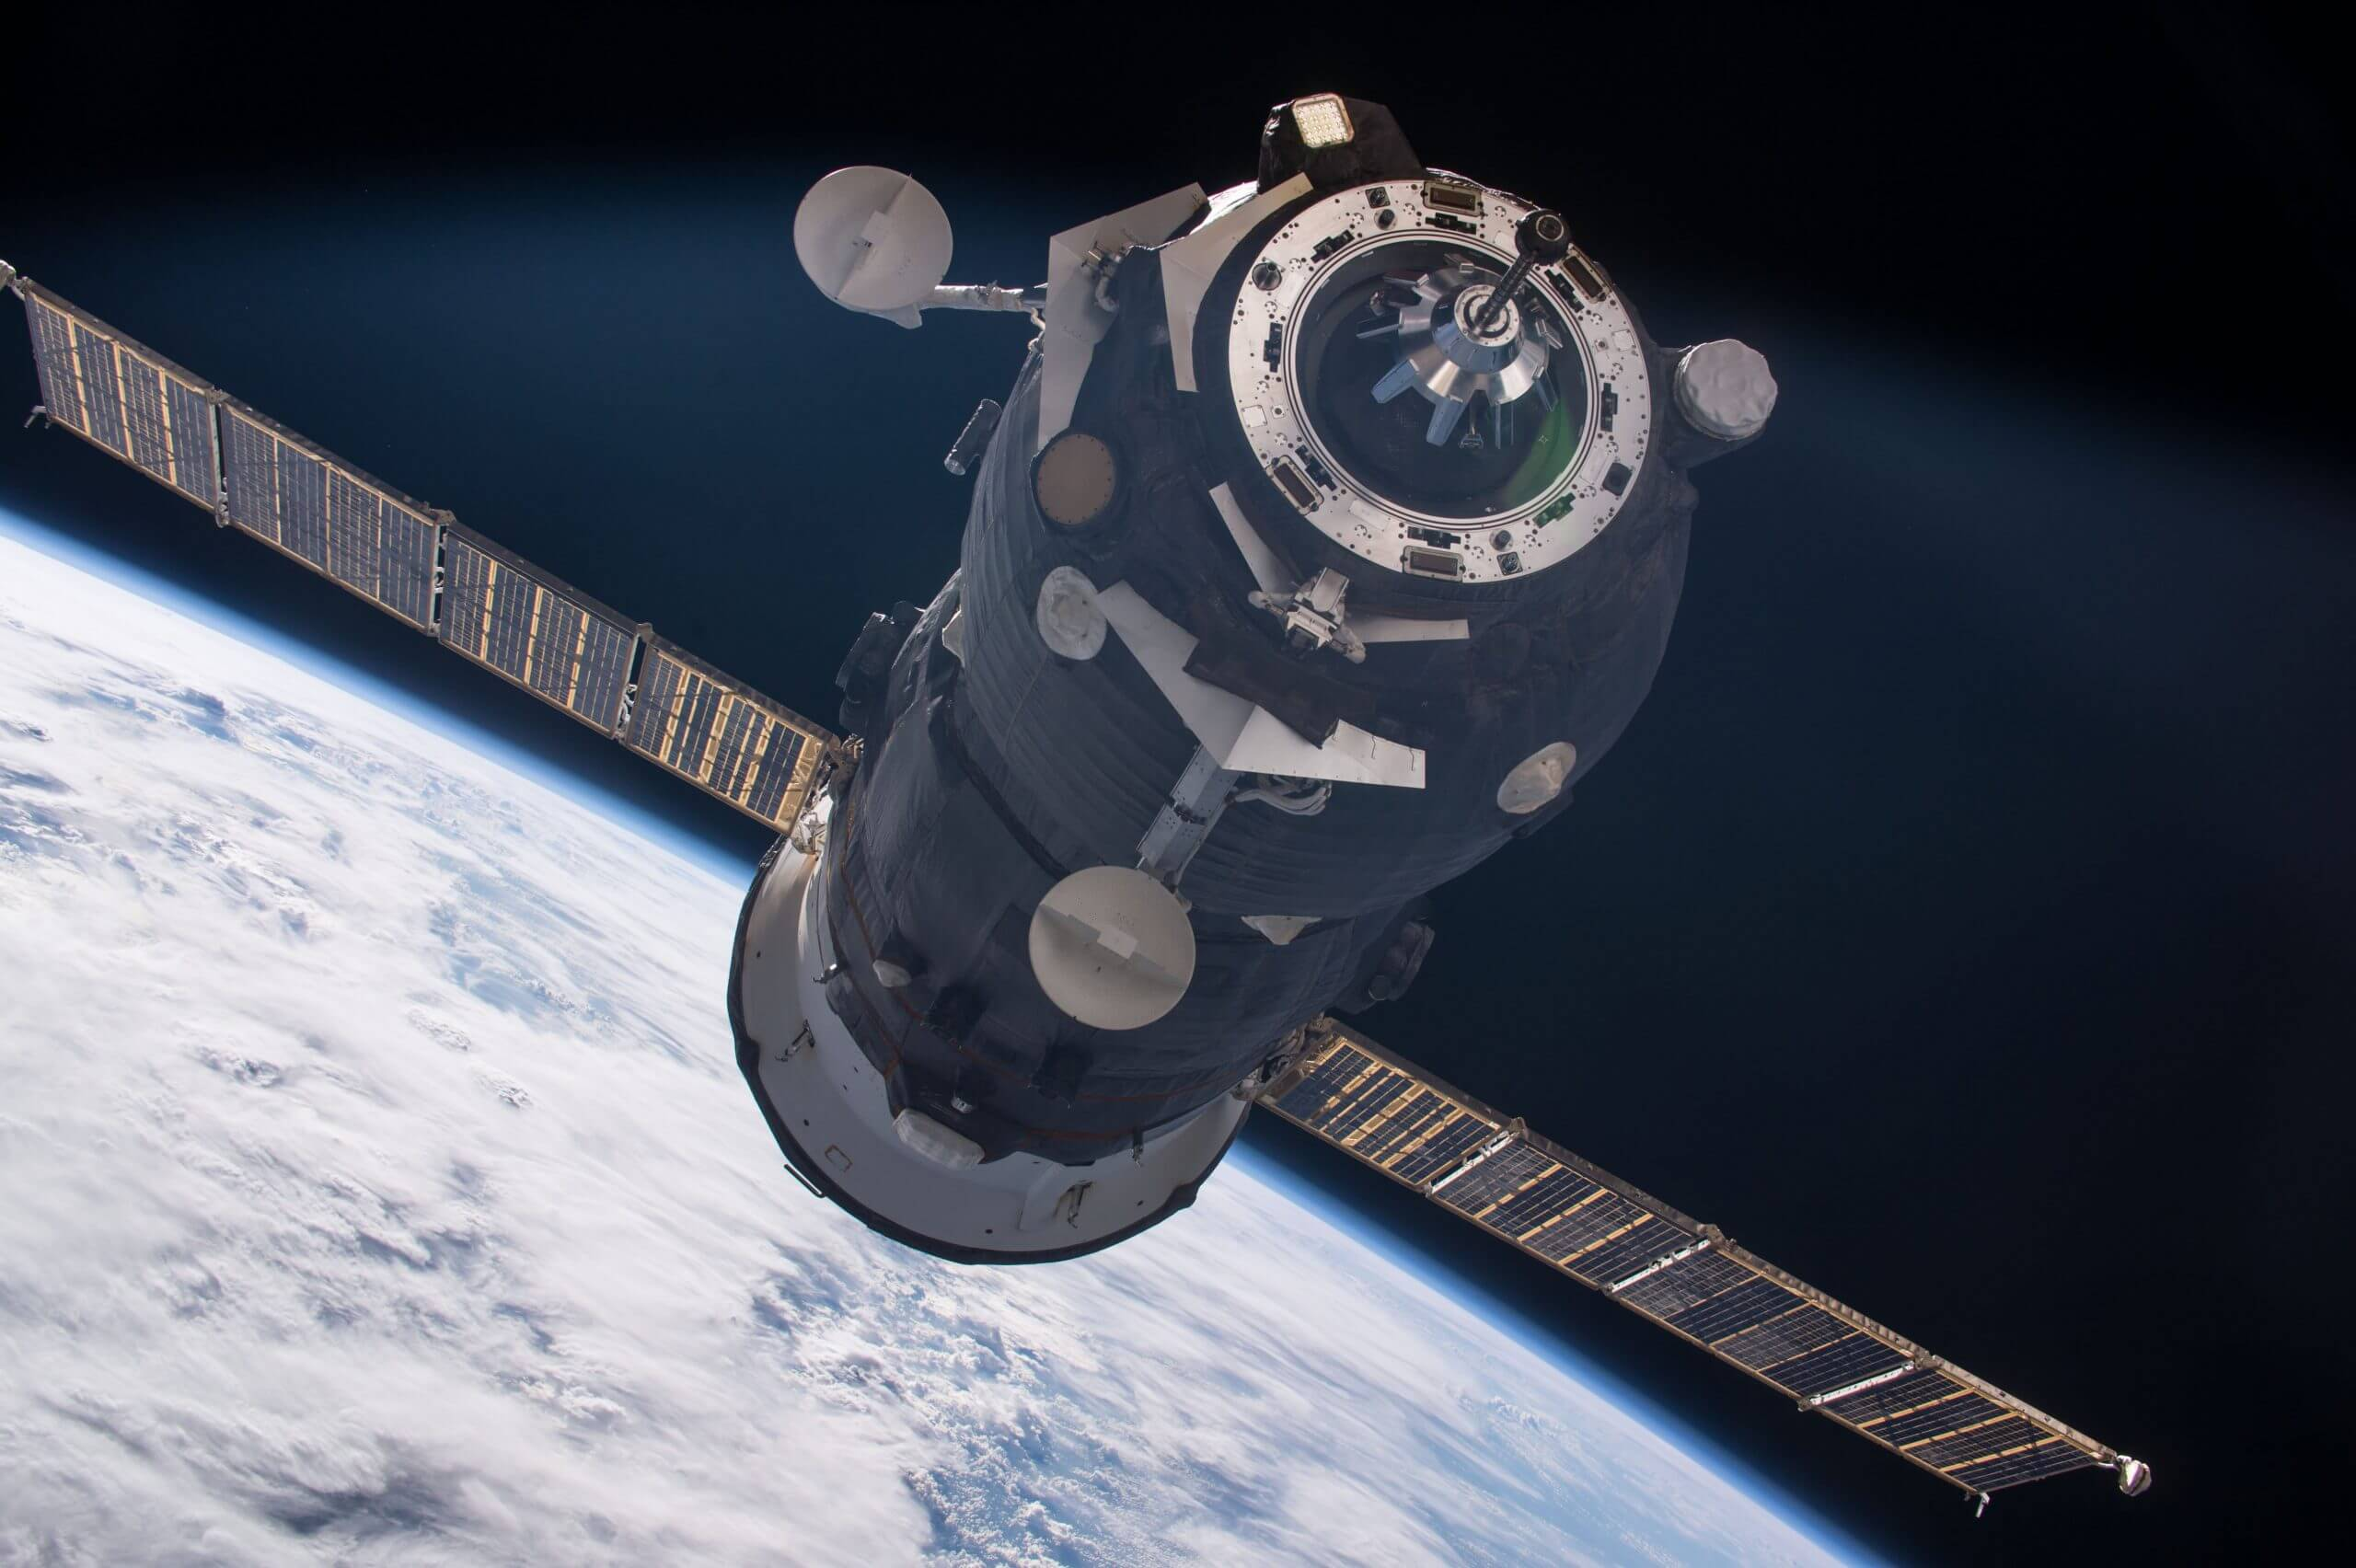 Cargo spacecraft Soyuz 1